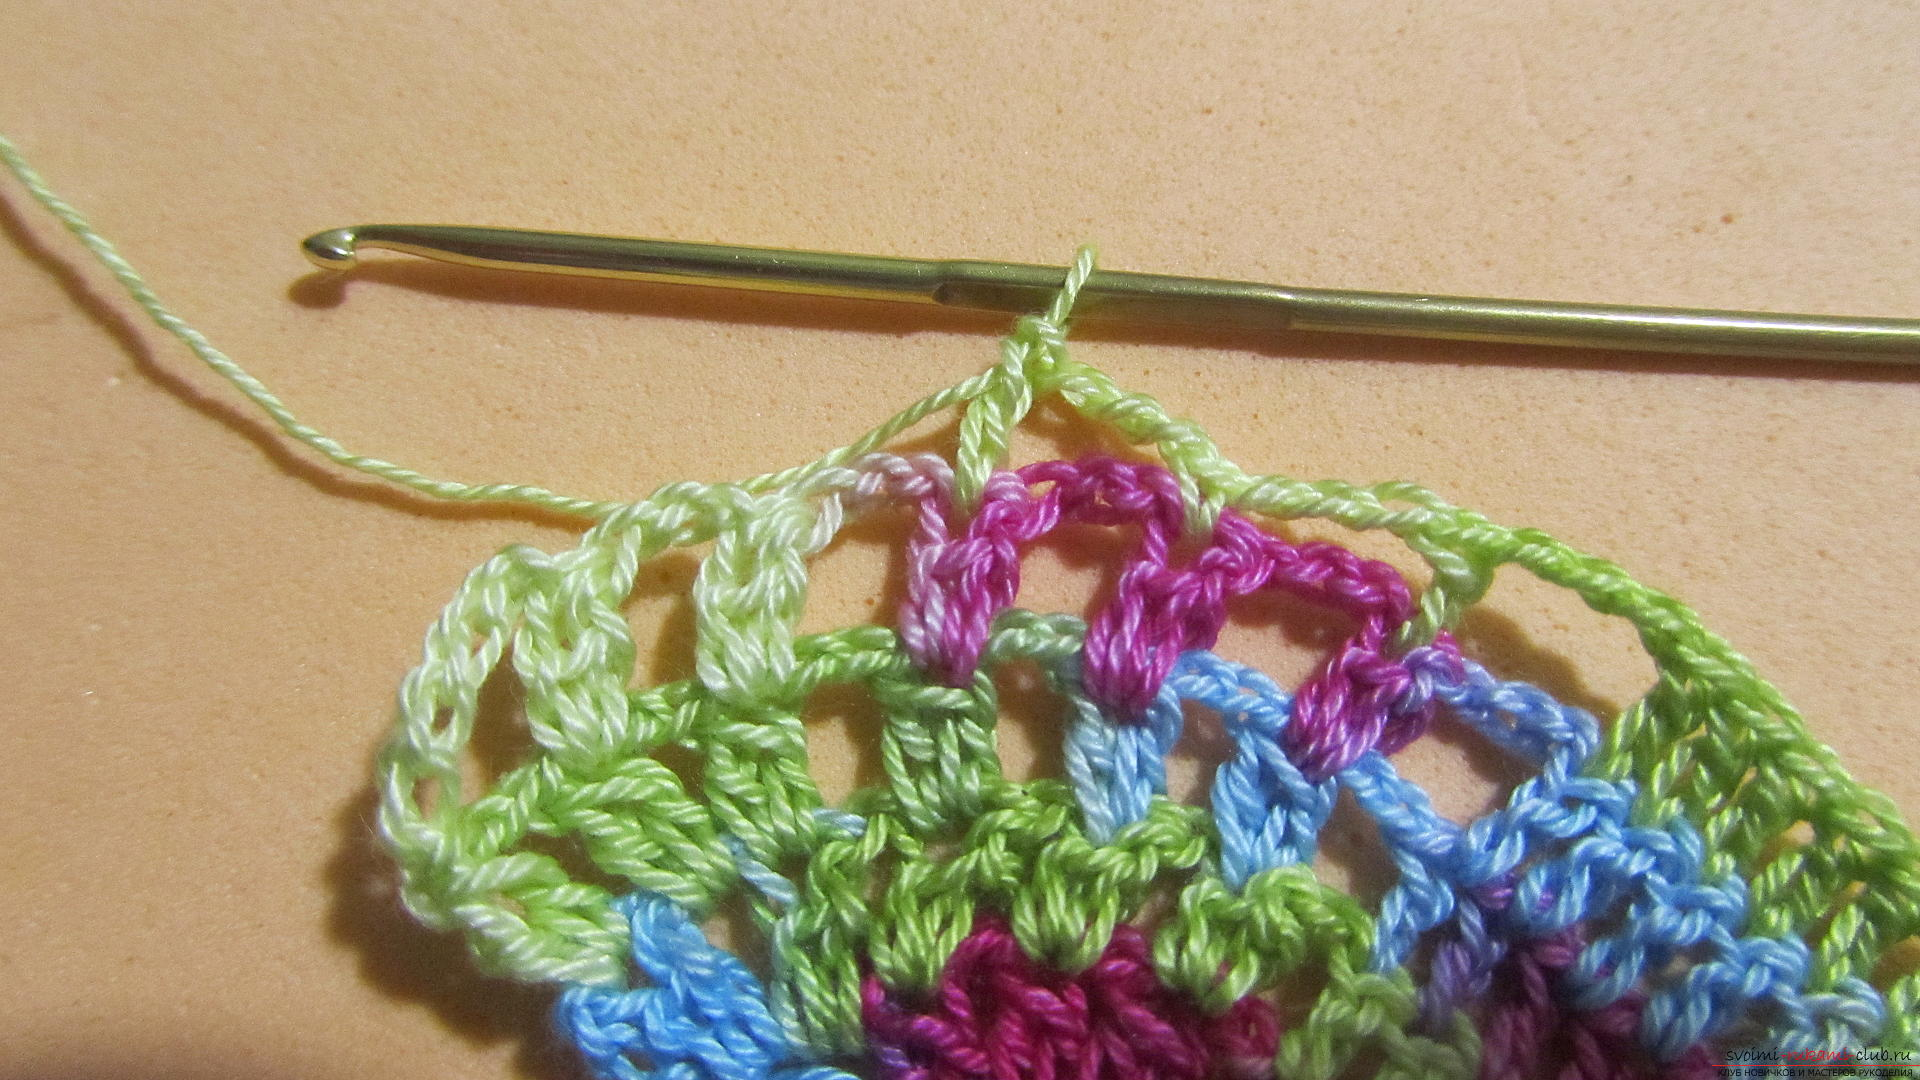 This master class with a pattern and description of crochet will teach you how to knit lace with hearts .. Photo # 35